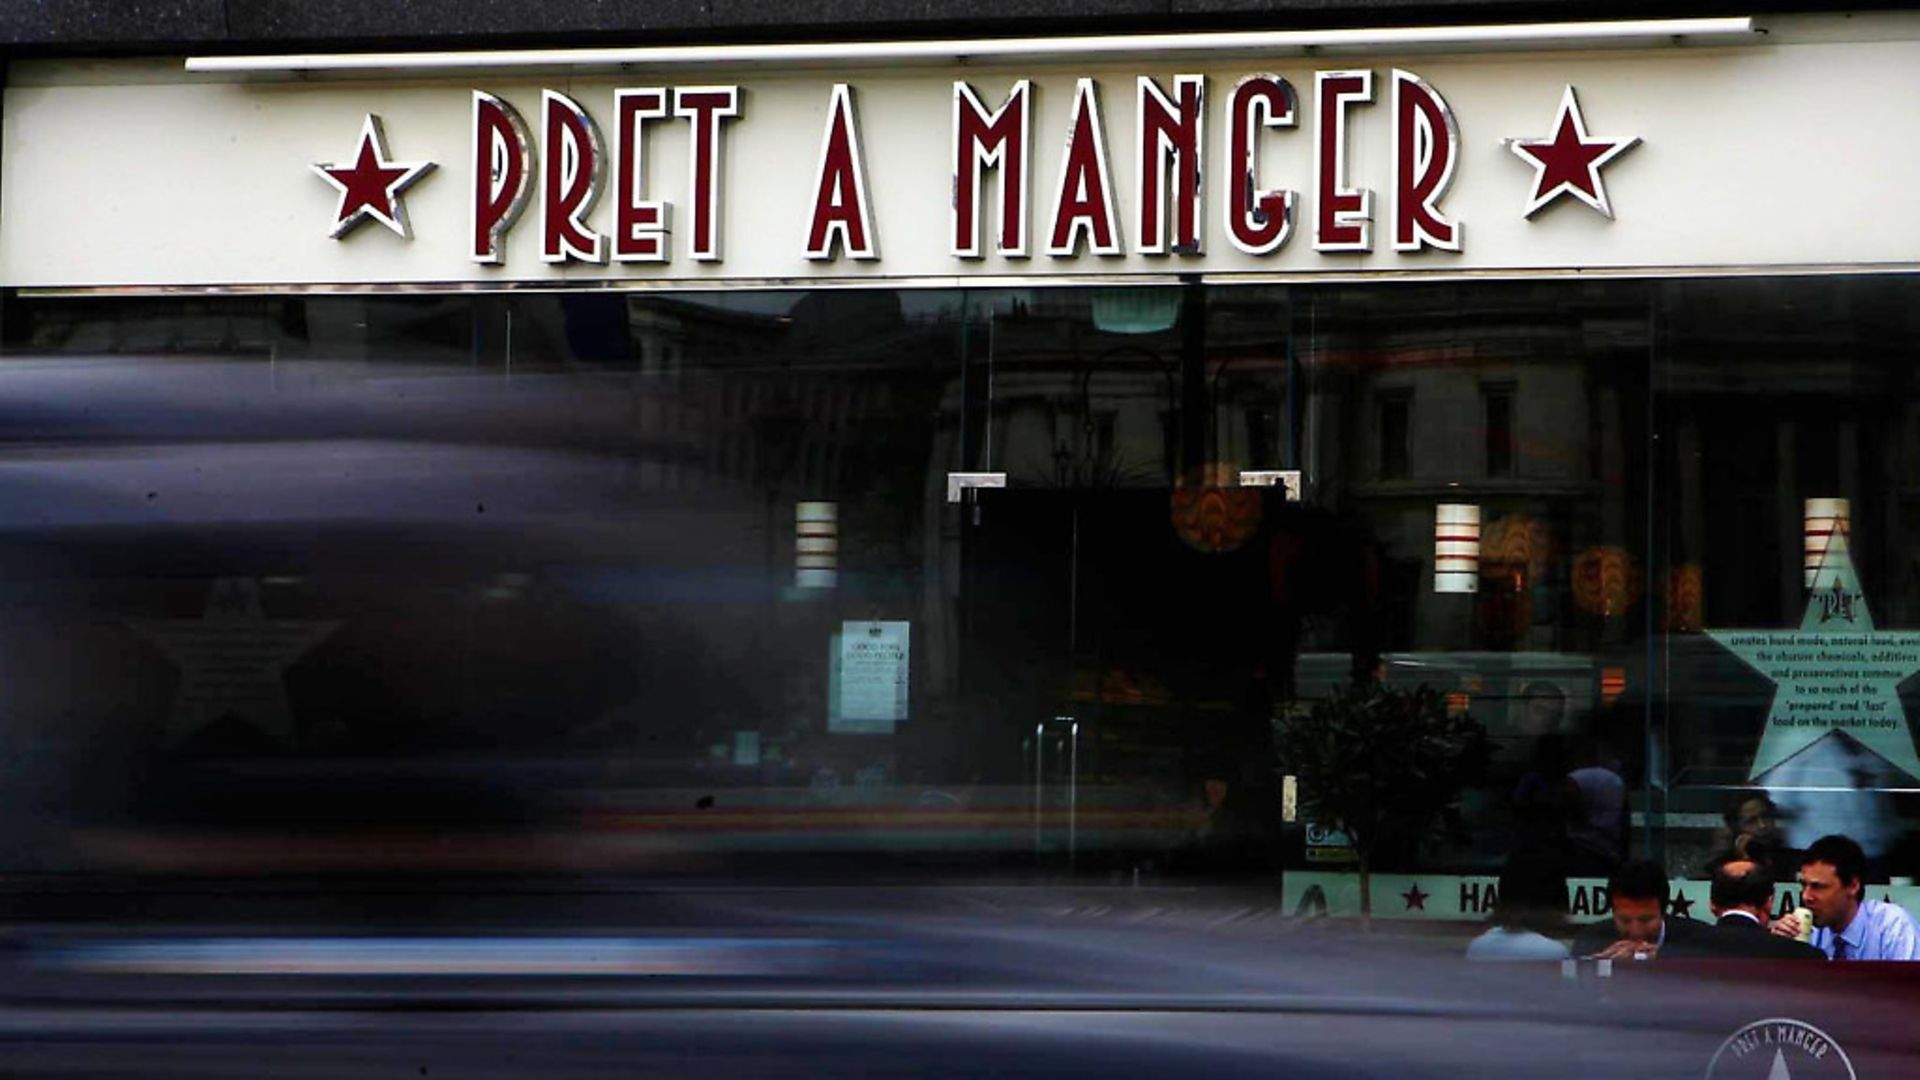 The chairman of the private equity investor deciding Pret A Manger's future has voiced his concerns about Brexit's impact. Picture: Cathal McNaughton/PA Archive/PA Images - Credit: PA Archive/PA Images